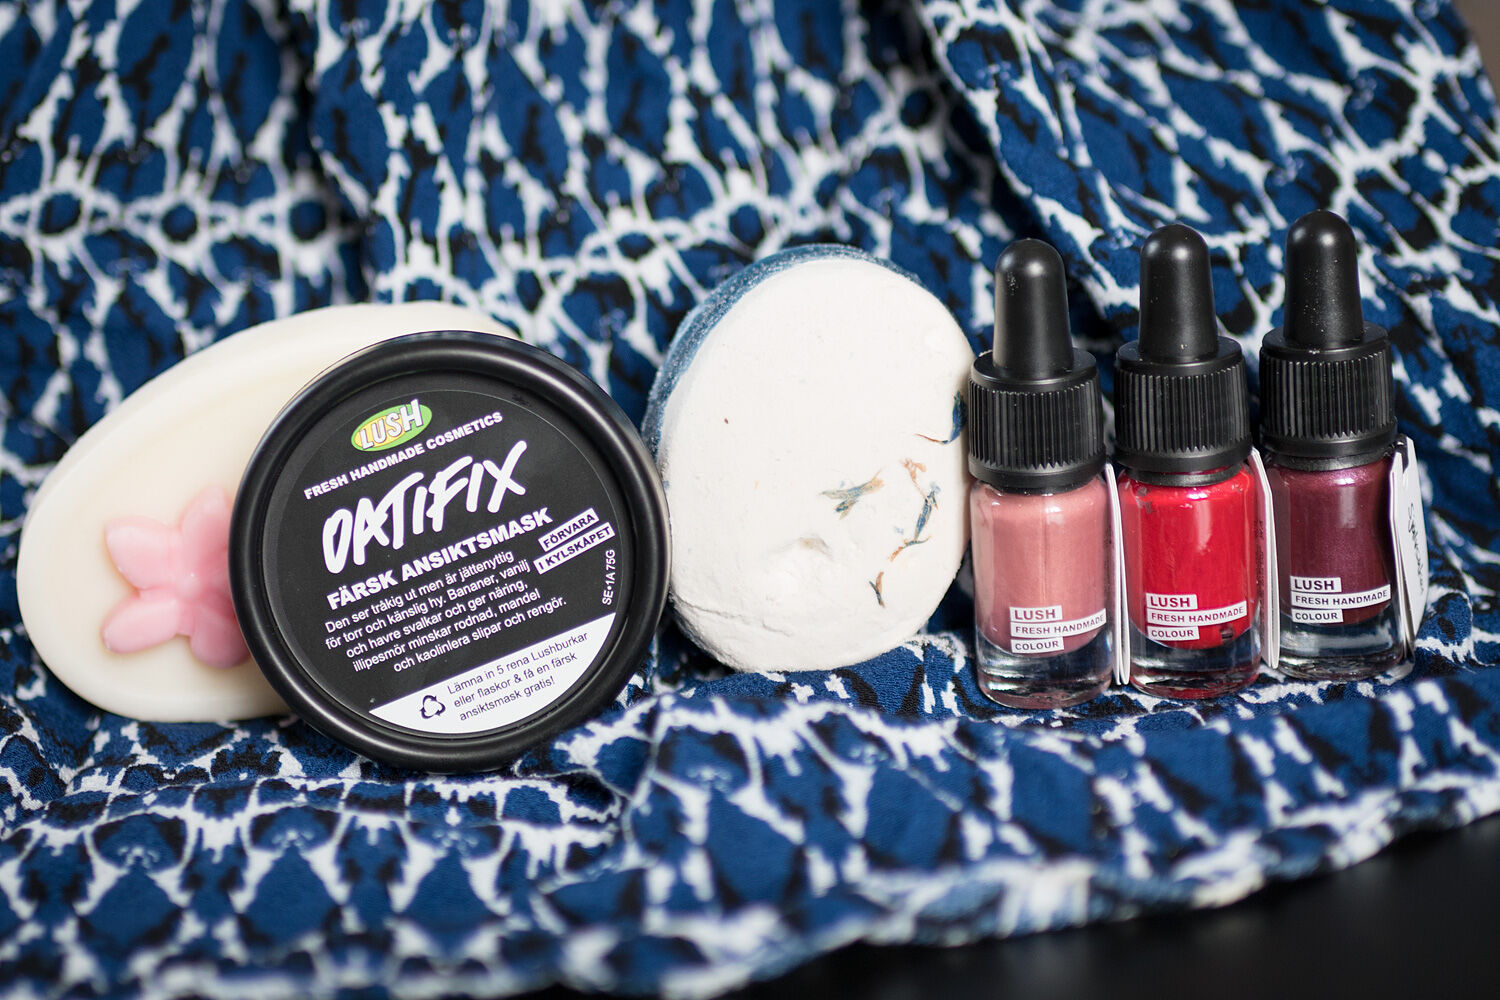 lush oatifix theo deo tender is the night lip color